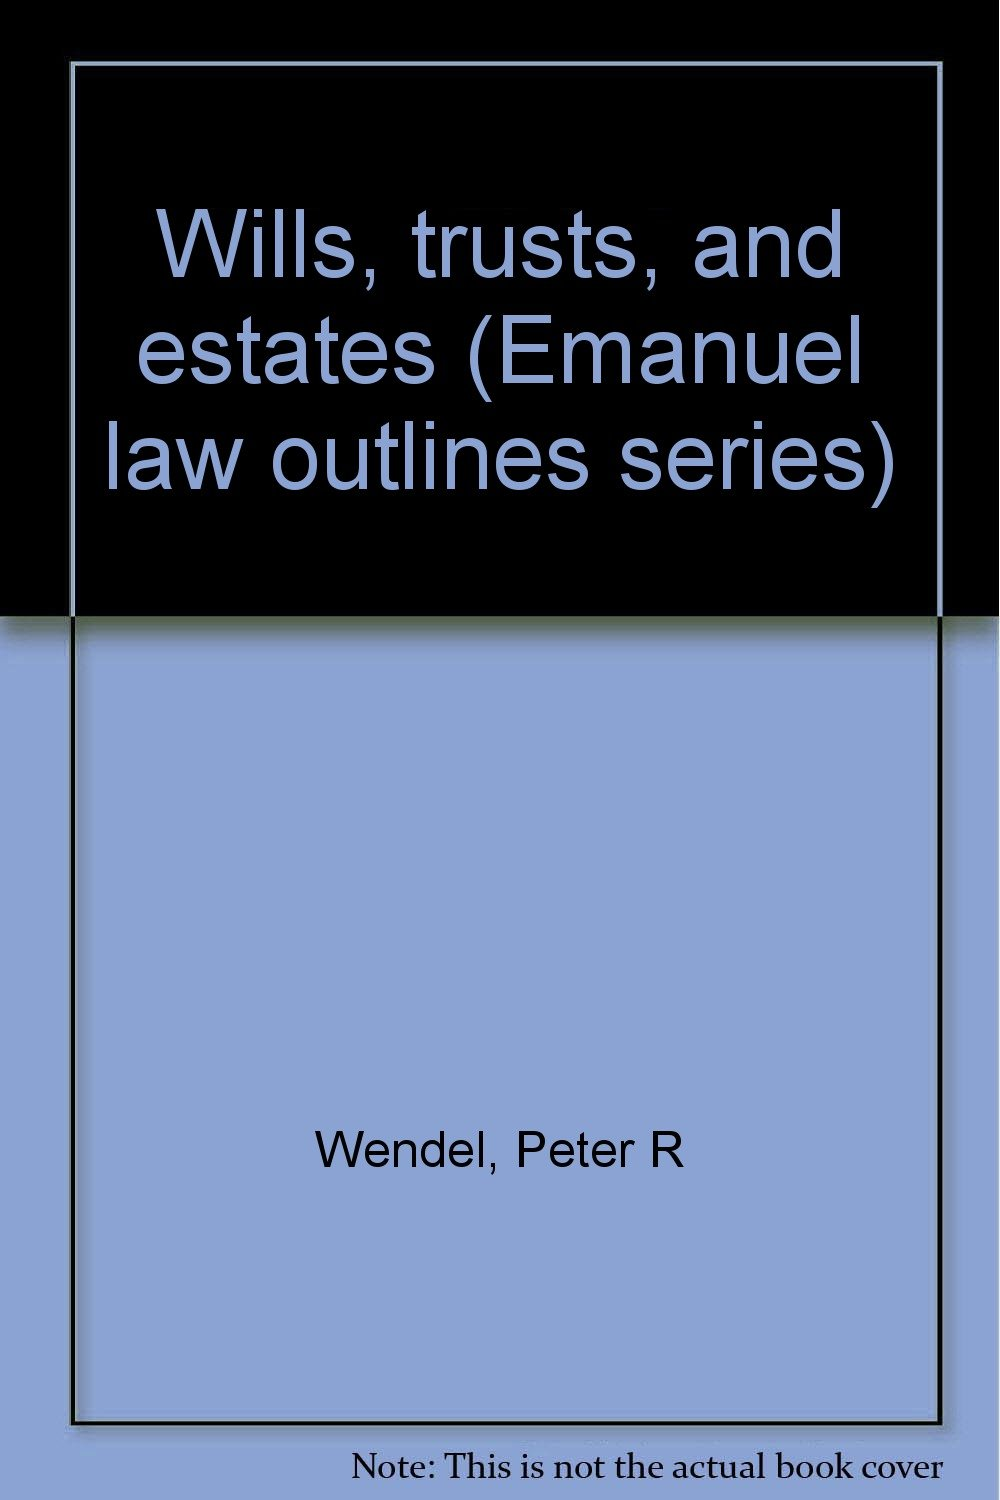 Wills, trusts, and estates (Emanuel law outlines series): Peter R Wendel:  Amazon.com: Books